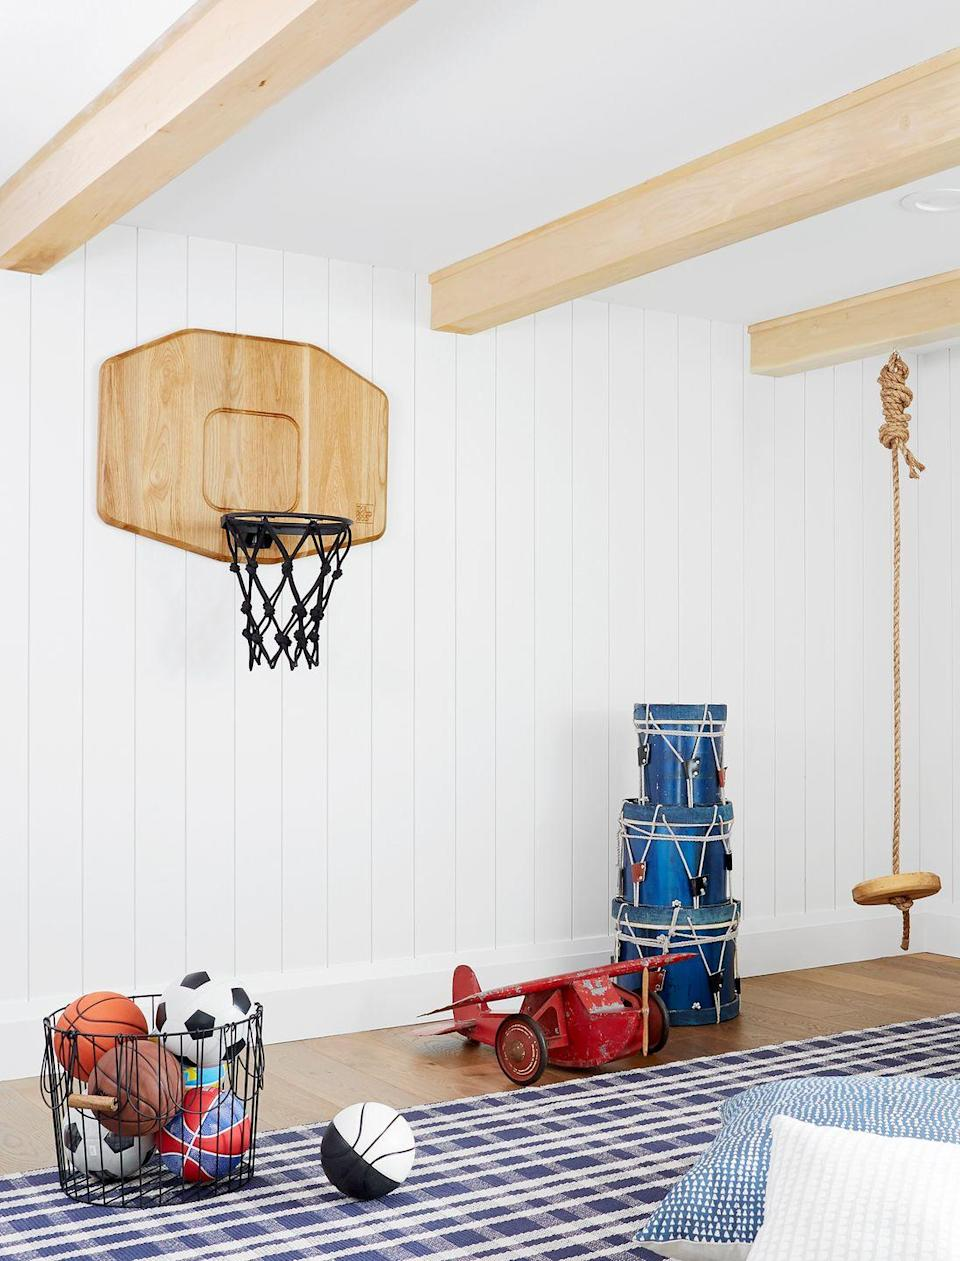 <p>Yes, even a basketball hoop can be chic. In this playroom designed by Emily Henderson, the swing, drums, and basketball hoops were customized to fit in with the contemporary home. And it's built to scale for the kids who use the space. </p>